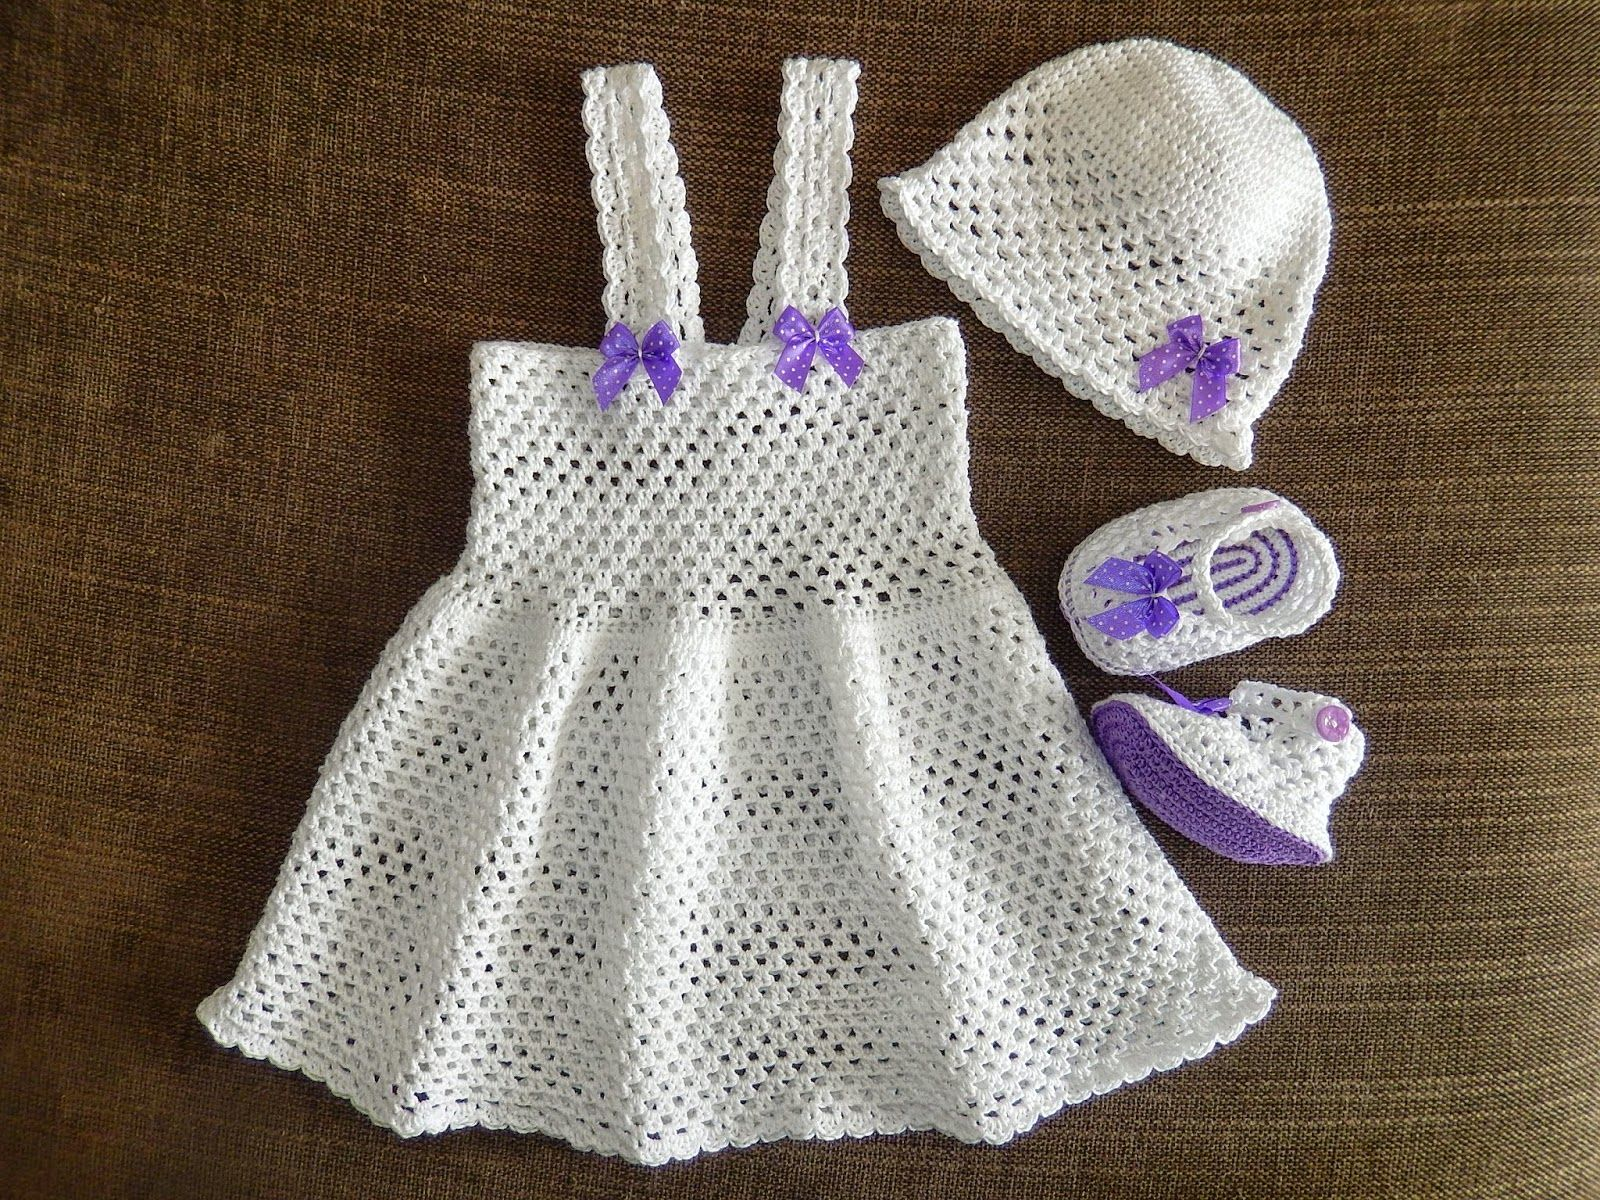 The Daily Knitter & Crocheter: Simple and easy crochet dress pattern ...